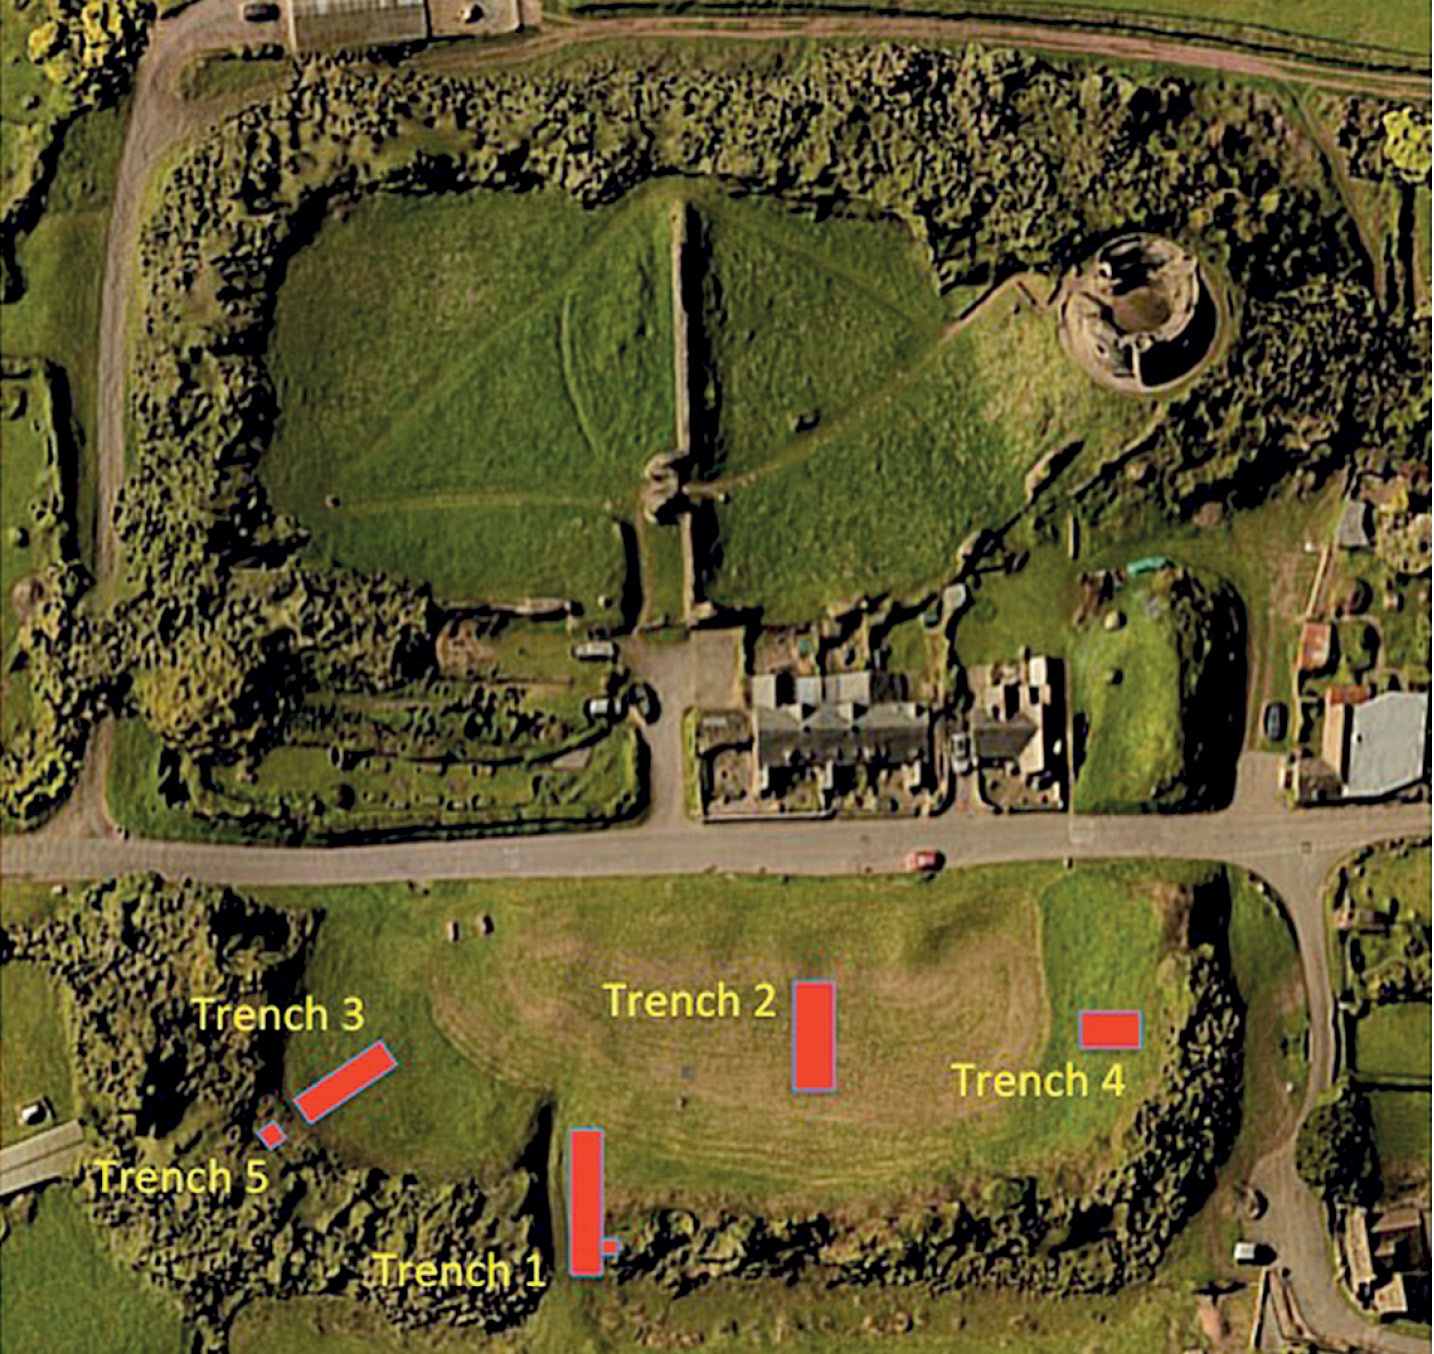 left The locations of the trenches excavated by the Longtown Castles Project team at Longtown Castle. Trench 1 was located to investigate the rampart, while Trench 2 yielded the medieval road overlying a Roman kiln or oven and a series of carbonised oak planks.